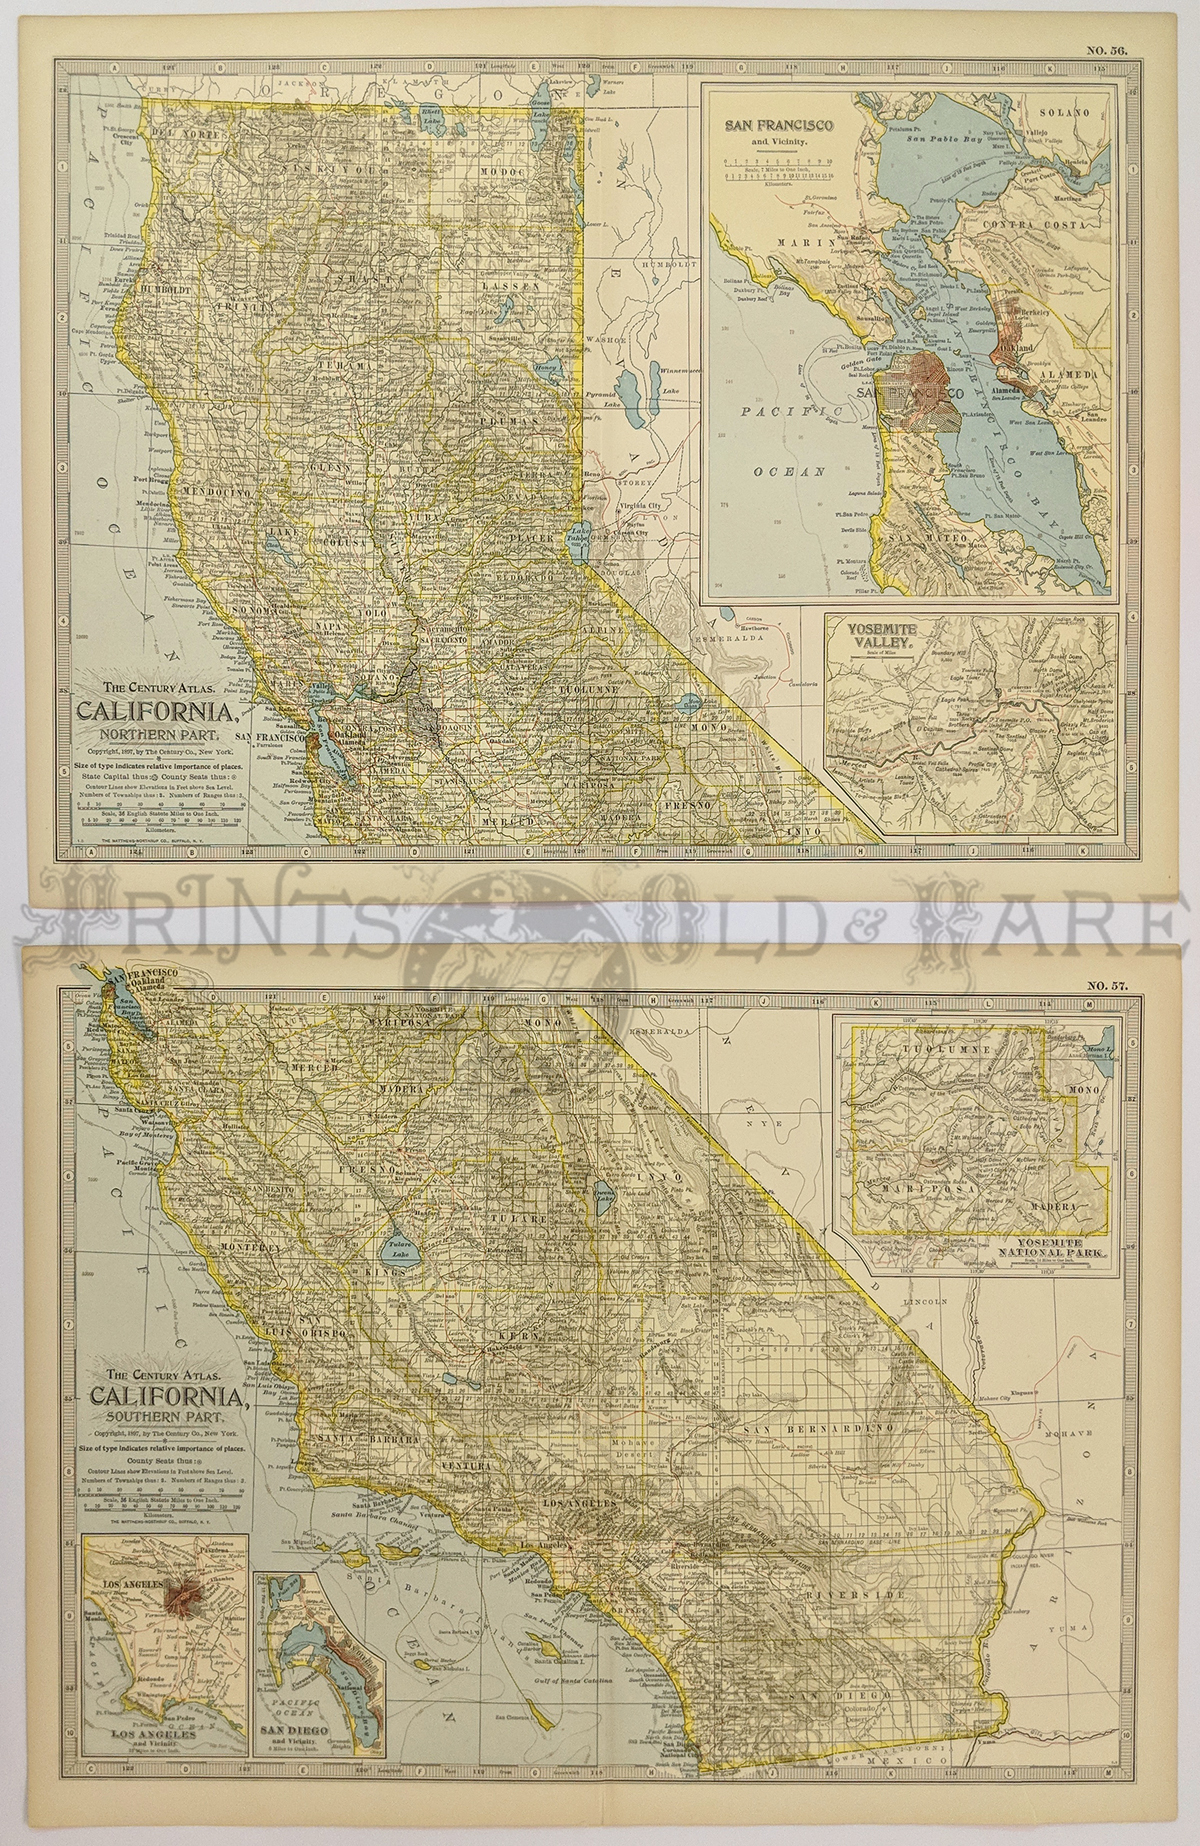 Prints Old Rare California Antique Maps Prints